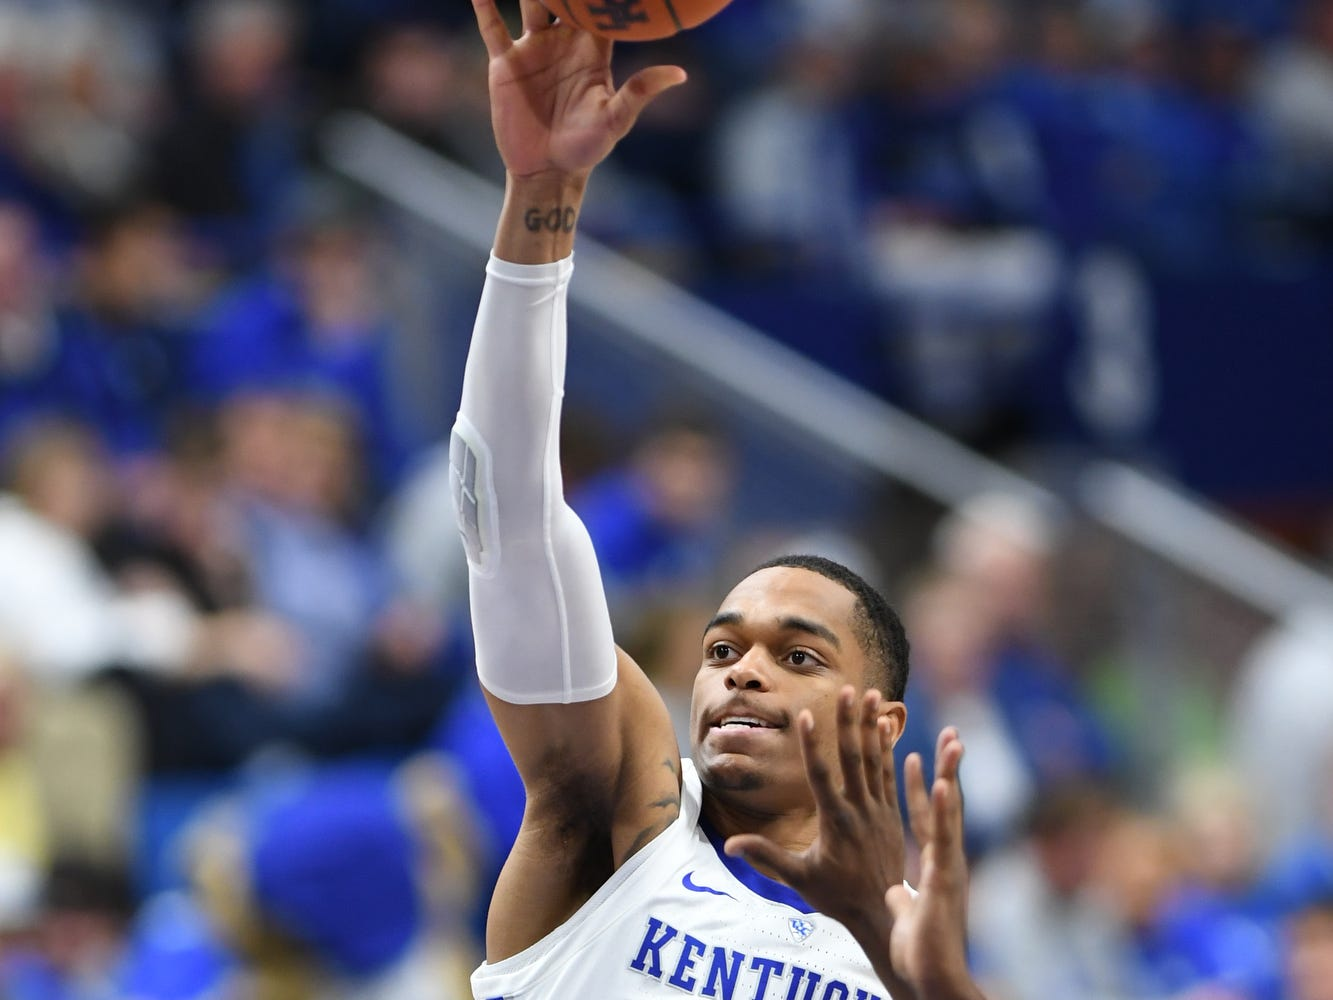 UK forward PJ Washington puts up the ball during the University of Kentucky men's basketball game against Tennessee State at Rupp Arena in Lexington, Kentucky on Friday, Nov. 23, 2018.